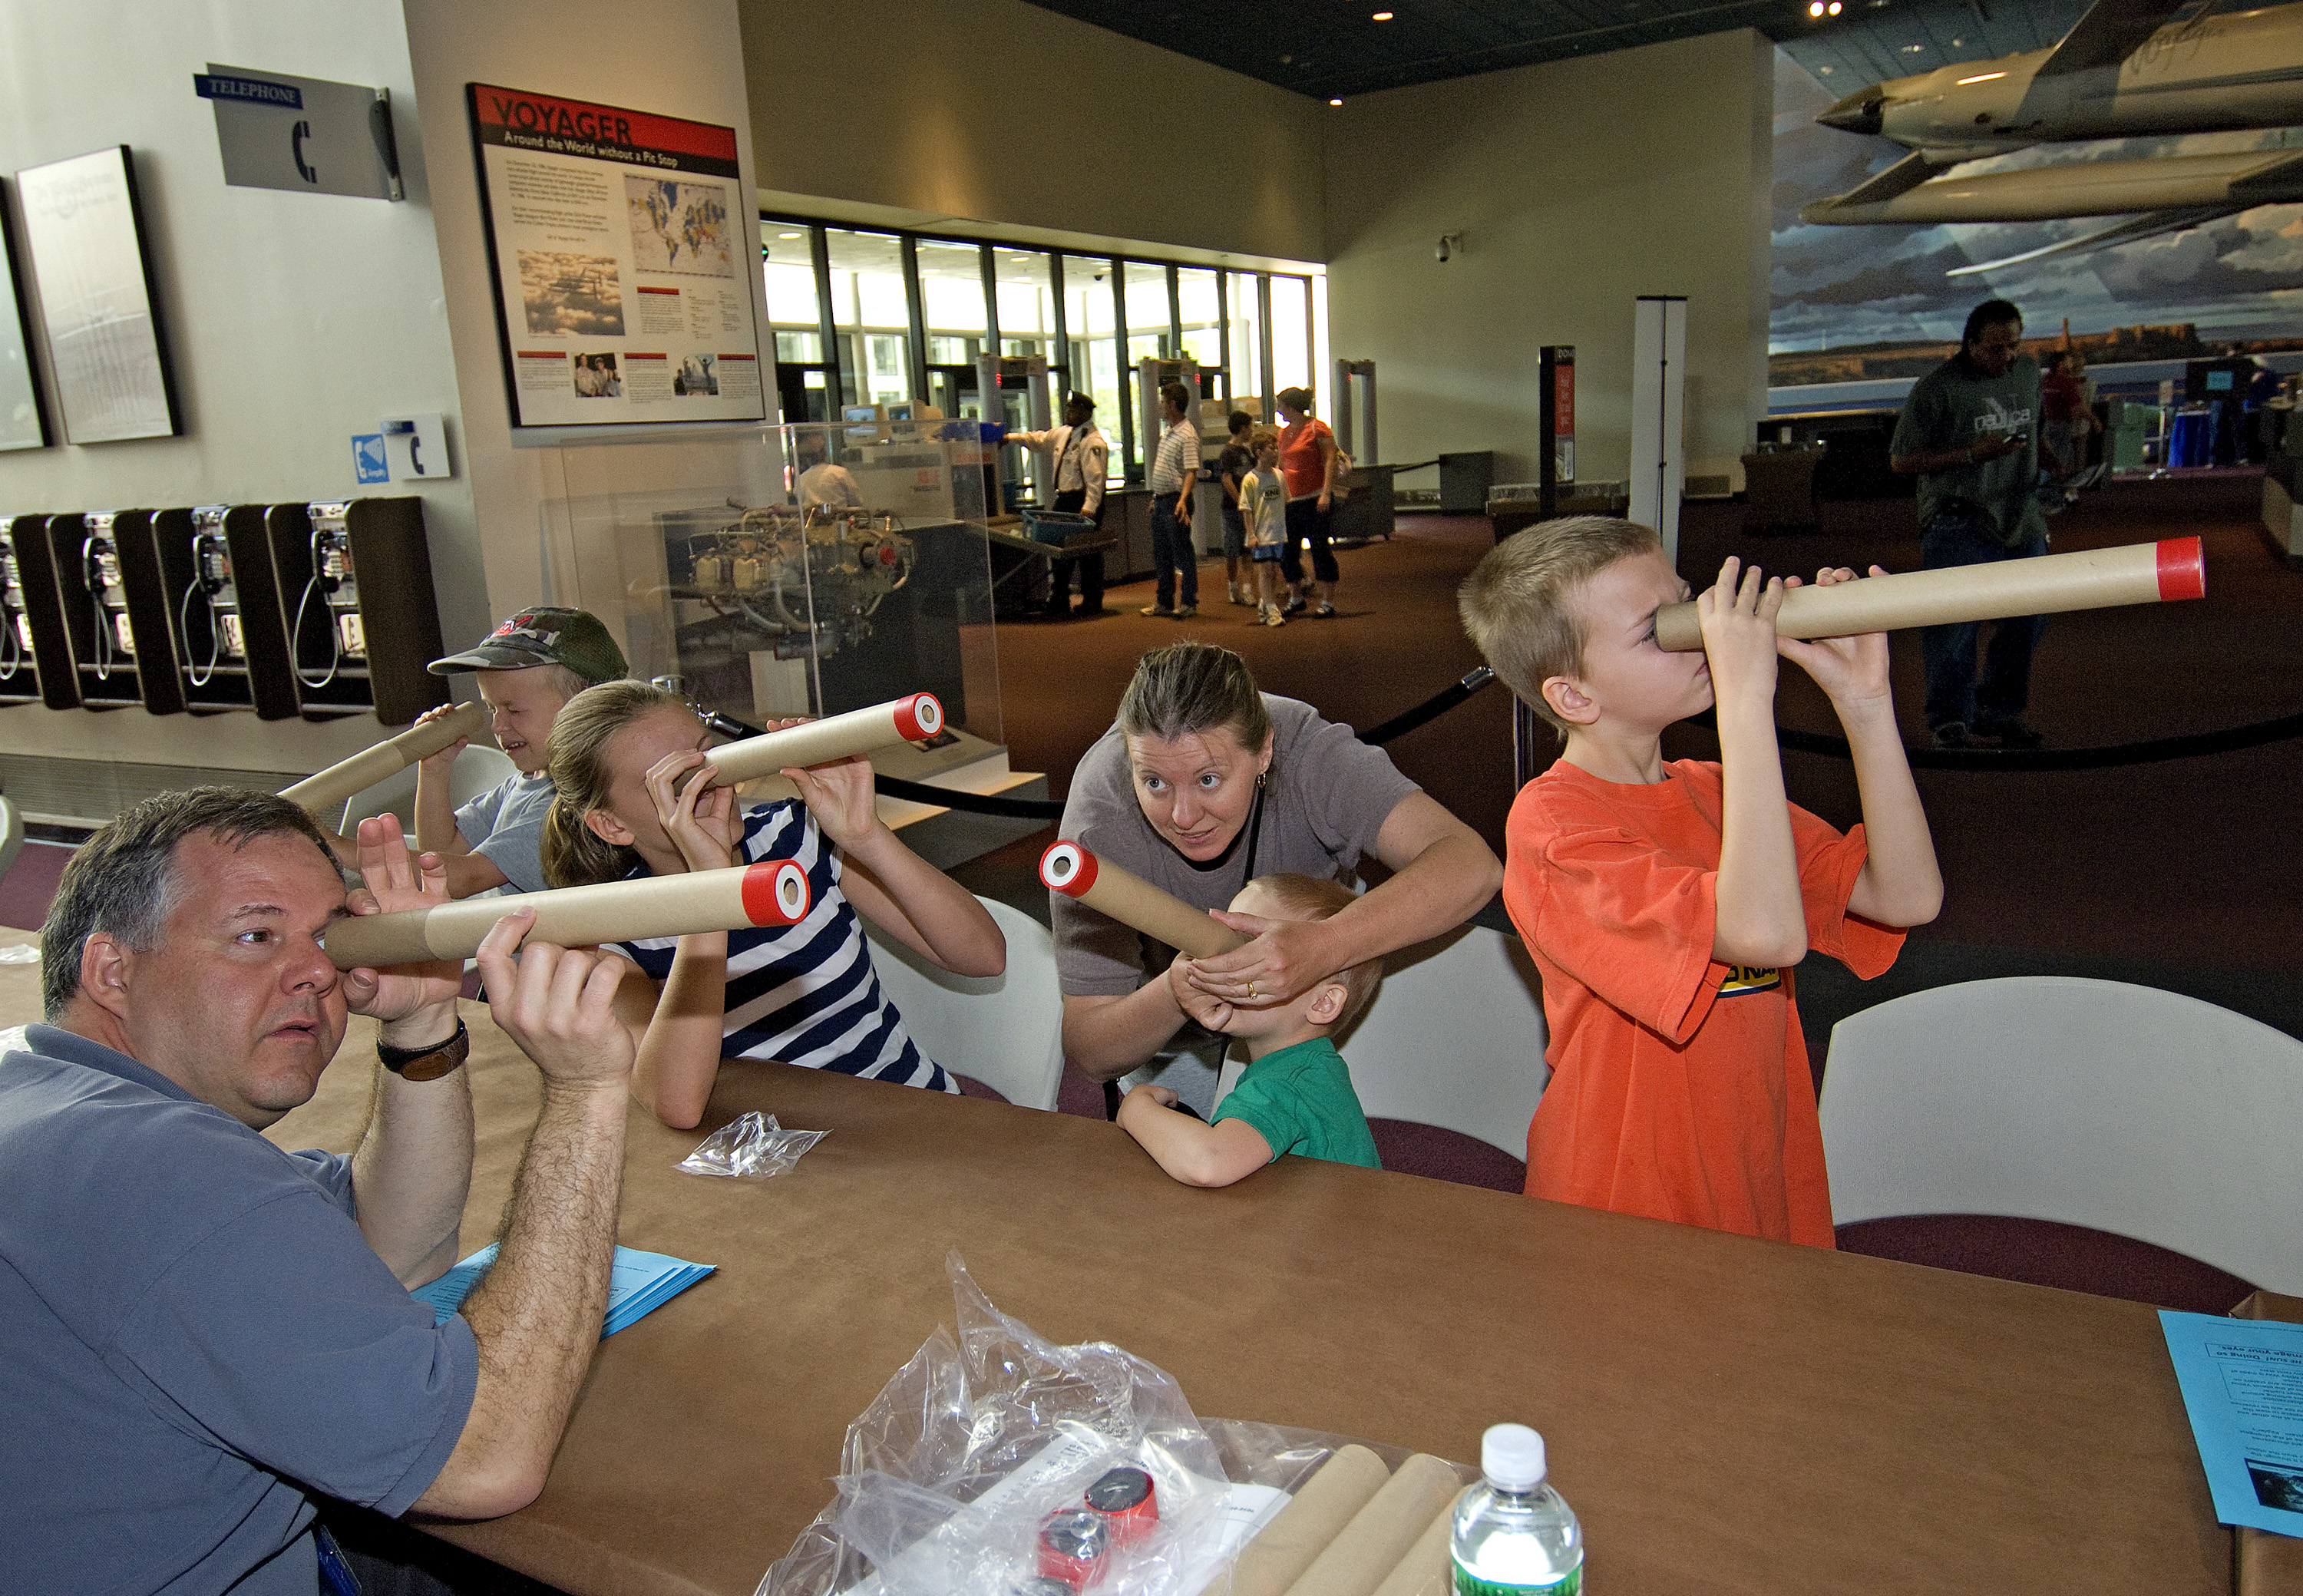 Visitors Look Through Telescopes at Explore the Universe Day